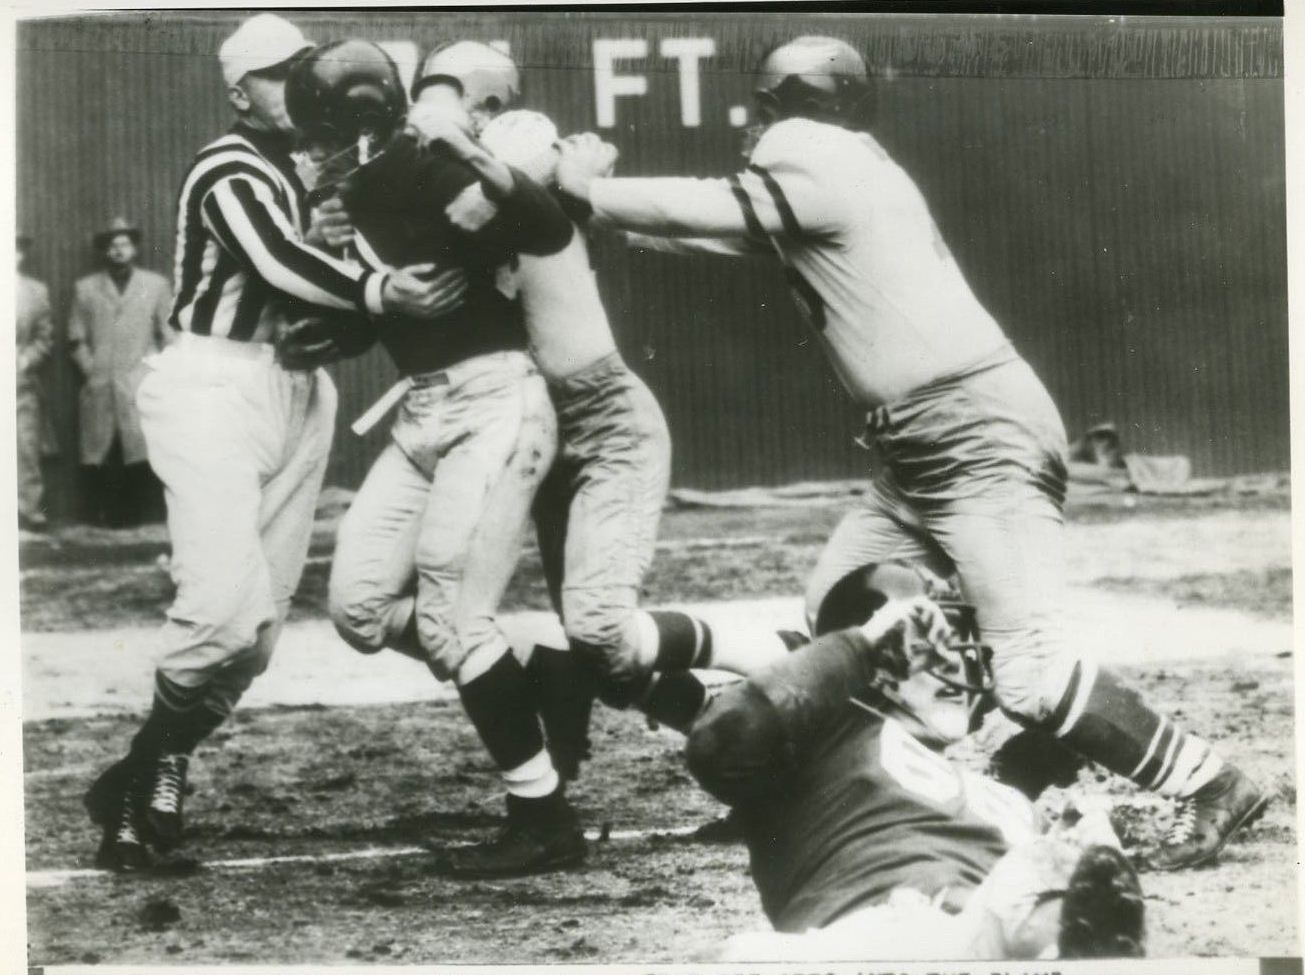 Ken MacAfee, New York Giants (December 12, 1954)